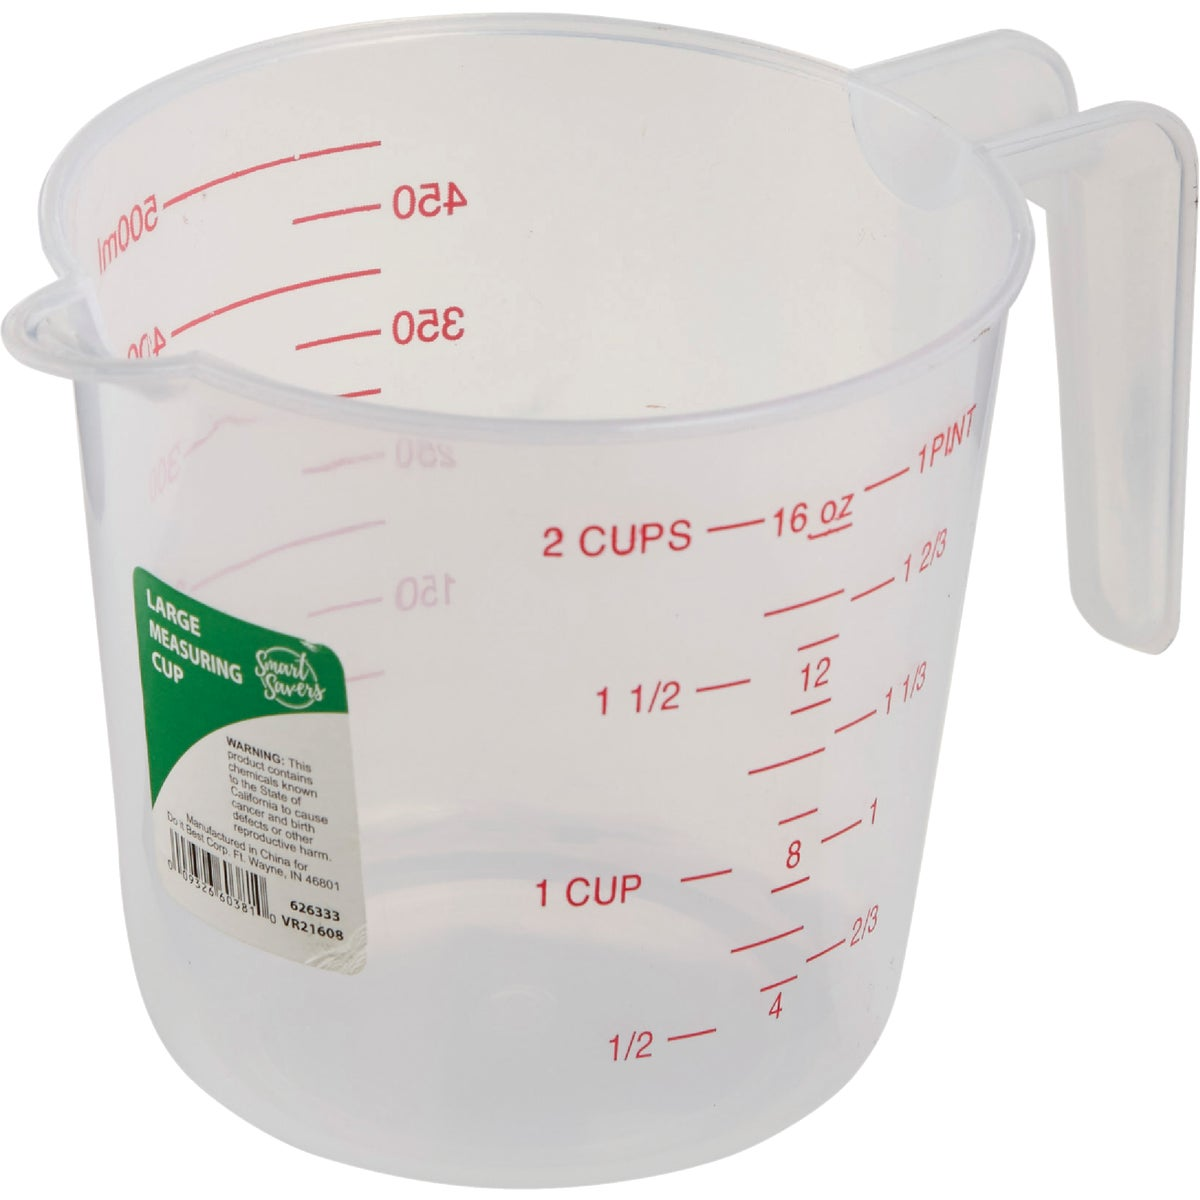 LARGE MEASURING CUP - 820054 by Do it Best